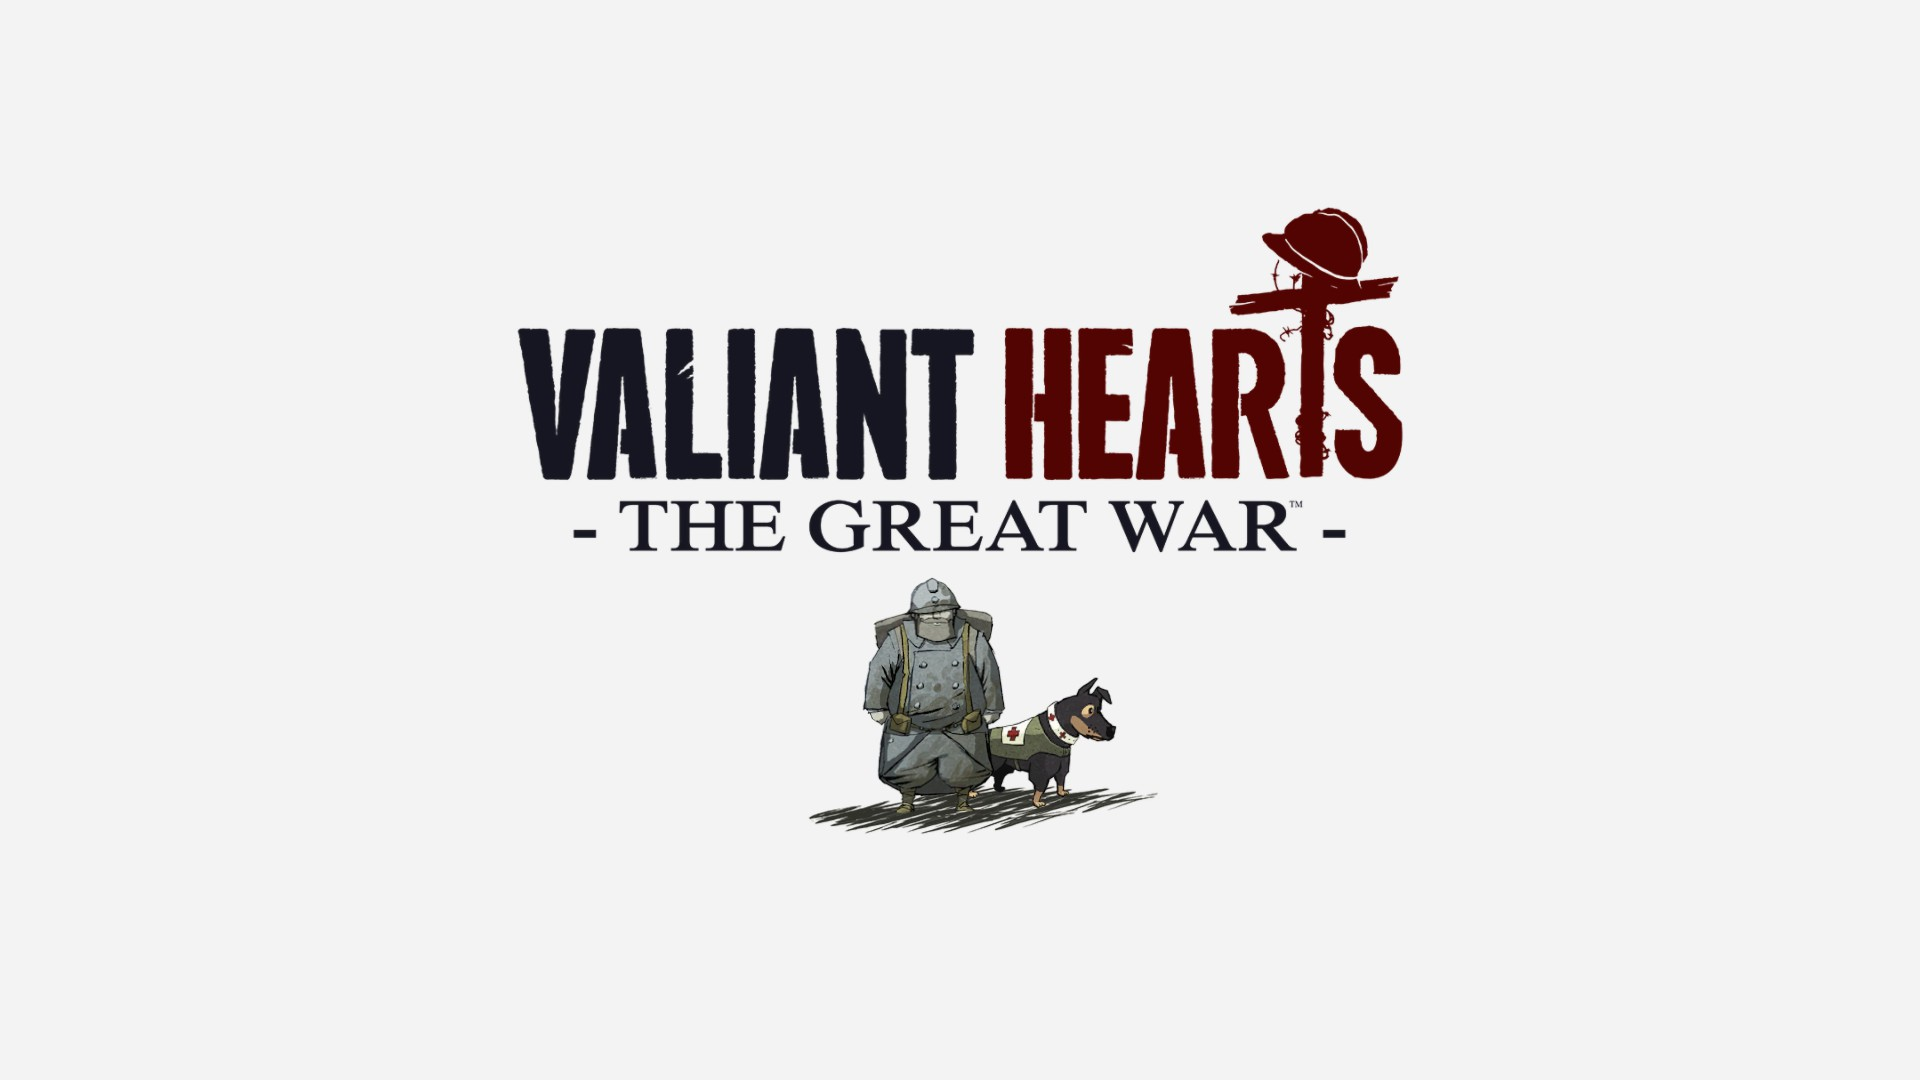 Valiant Hearts—The Great War. A soldier stands wearing a backpack, beside a medical dog wearing a red cross.